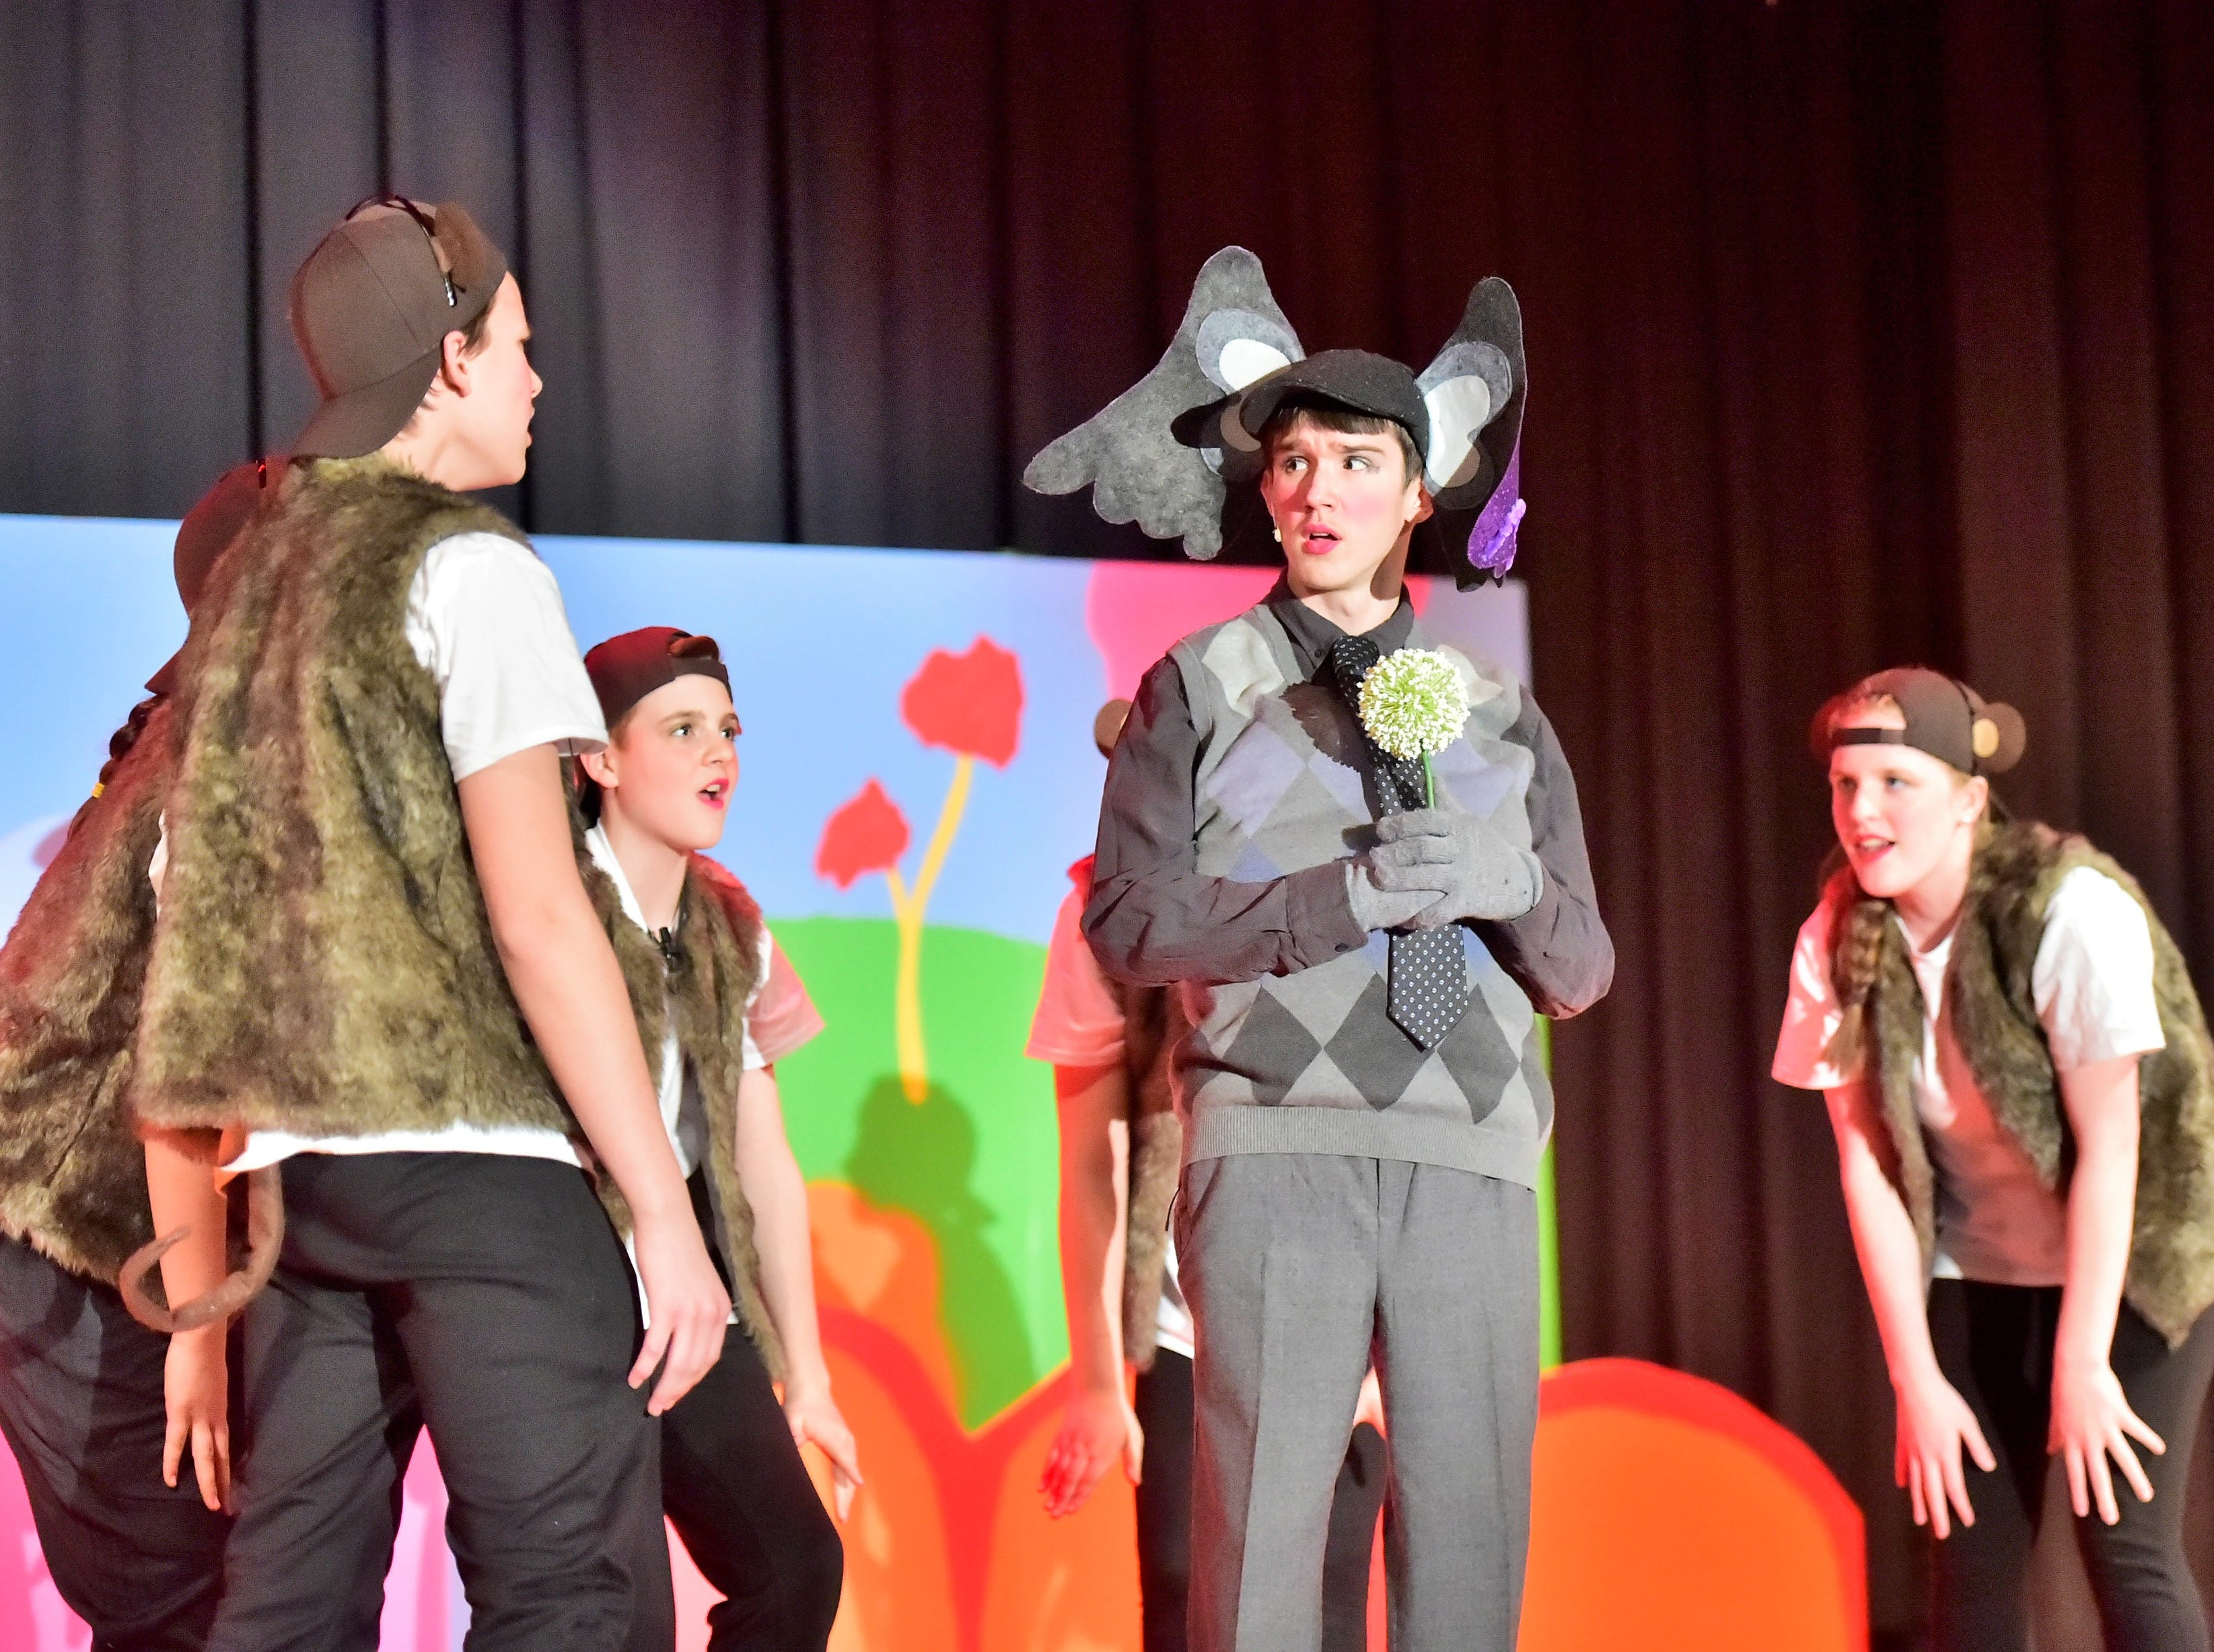 "The Whickersham Monkeys (played by Matthew Rosenberger, Katelyn Grace, Taylor McNamara, Ethan Wetherhold, Kayla Hall and Joseph Allison) surround Horton the Elephant (played by Jacob Picking) during a dress rehearsal Tuesday, Feb. 19, 2019, for ""Seussical Jr."" Chambersburg Area Middle School South Drama Club will present the production at 7 p.m. Friday and Saturday, Feb. 22 and 23, and 2 p.m. Saturday and Sunday, Feb. 23 and 24, in the CAMS South auditorium. For tickets, $8, go to www.showtix4u.com and look up CAMS South Seussical."